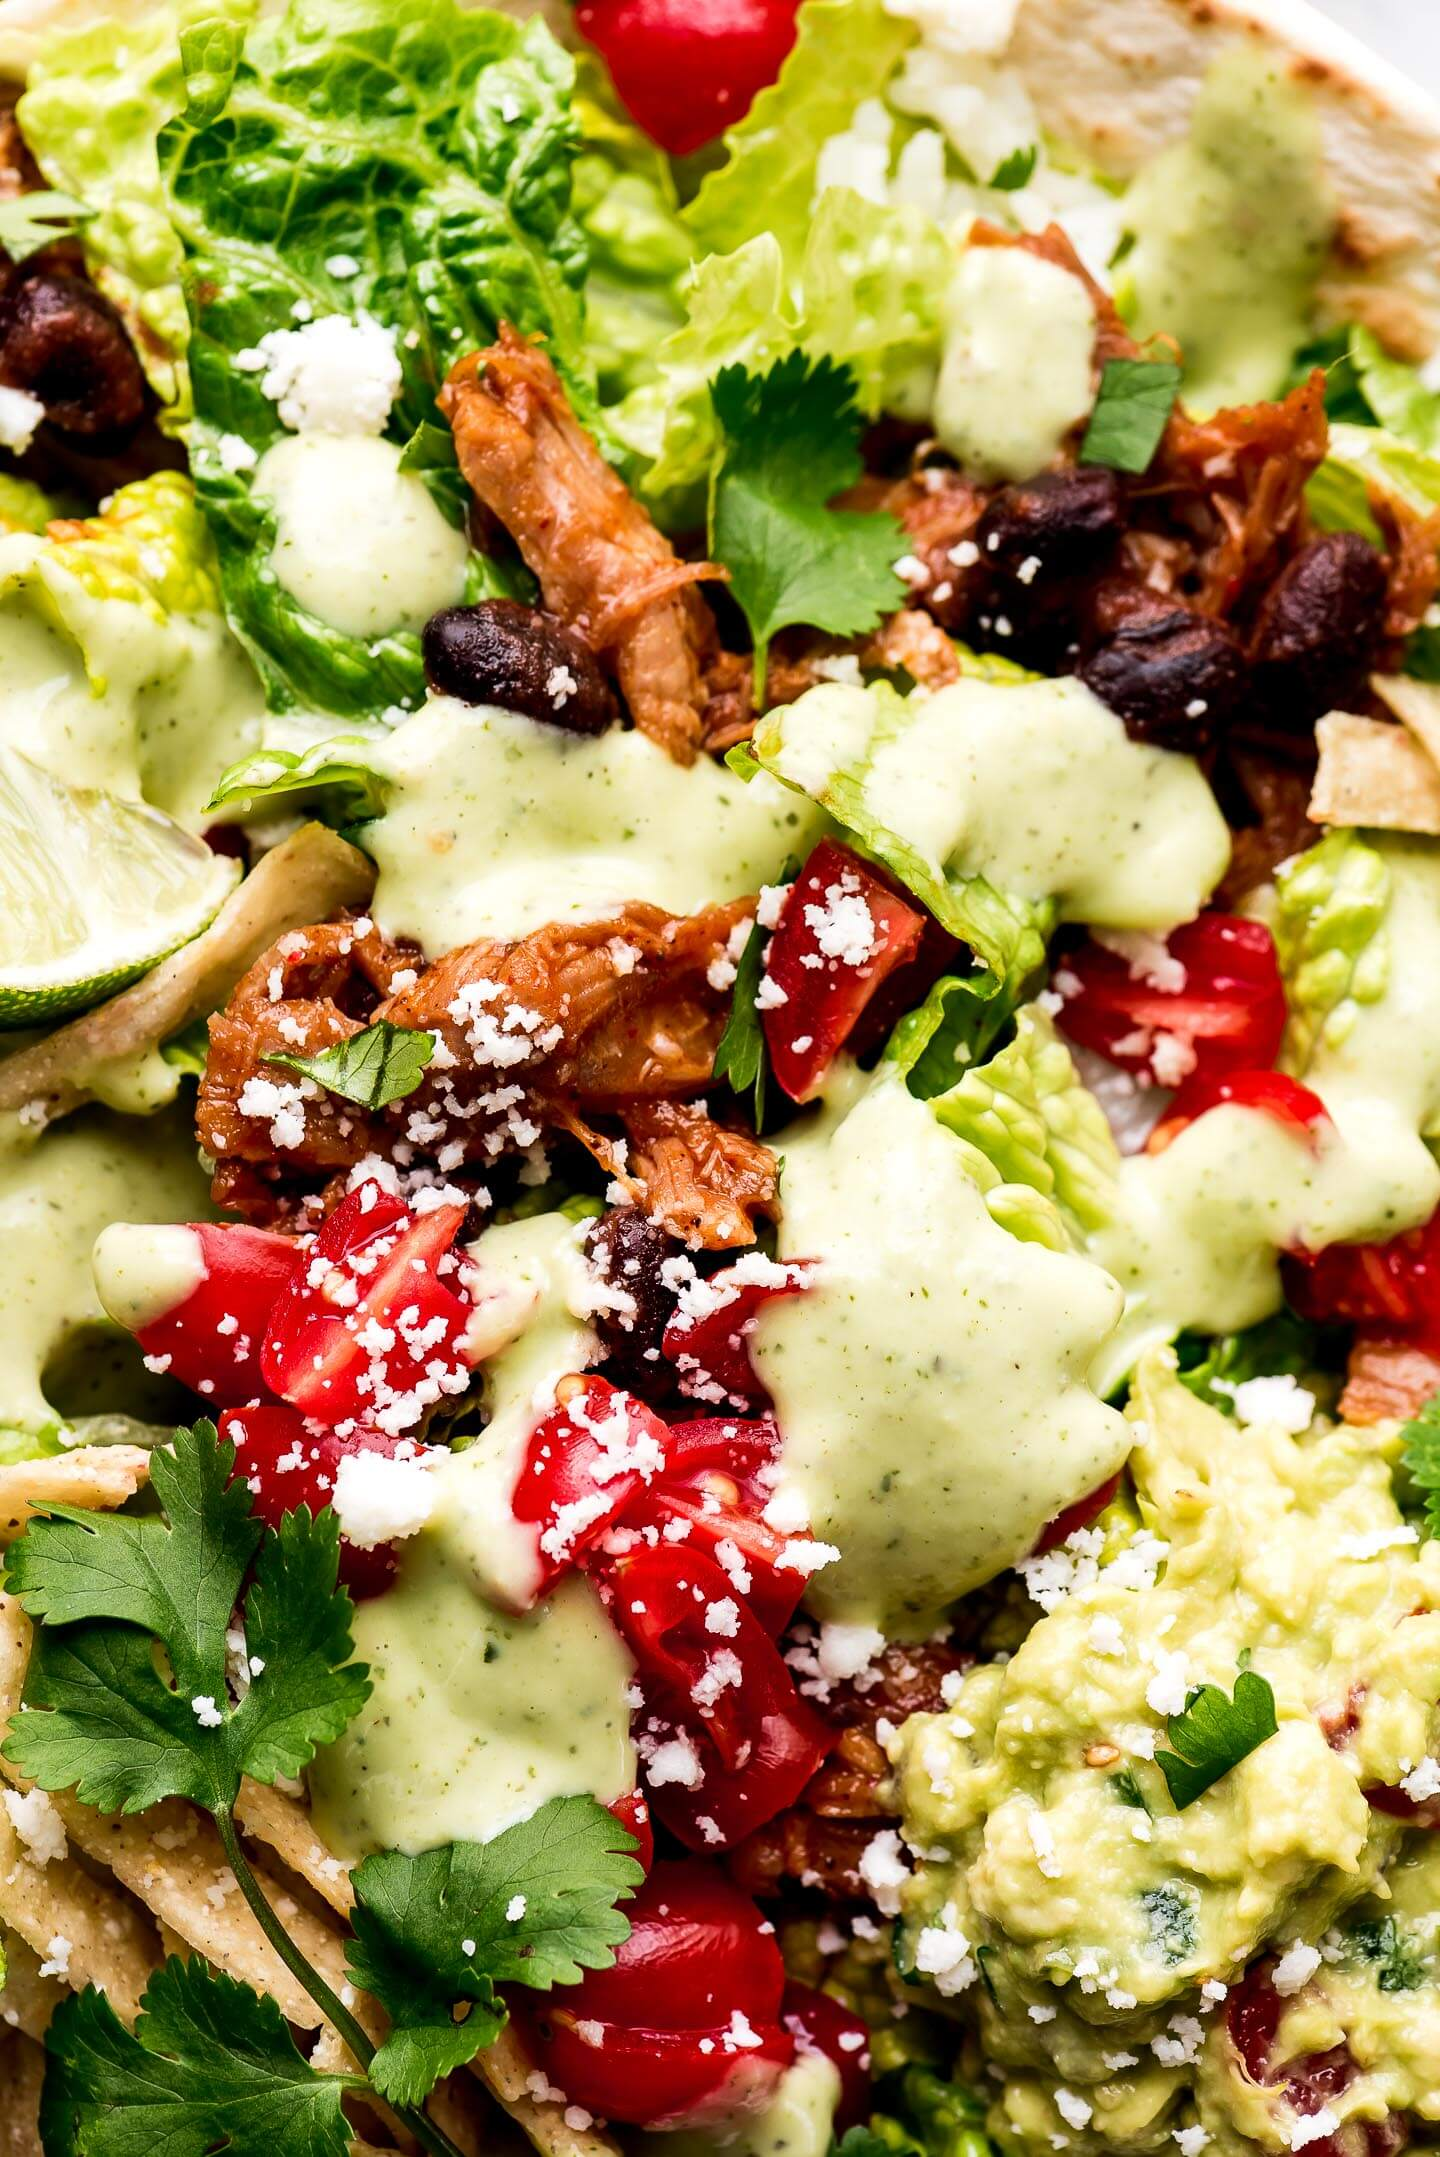 A close-up shot of Cafe Rio Sweet Pork Salad drizzled with creamy Cilantro Lime Dressing.